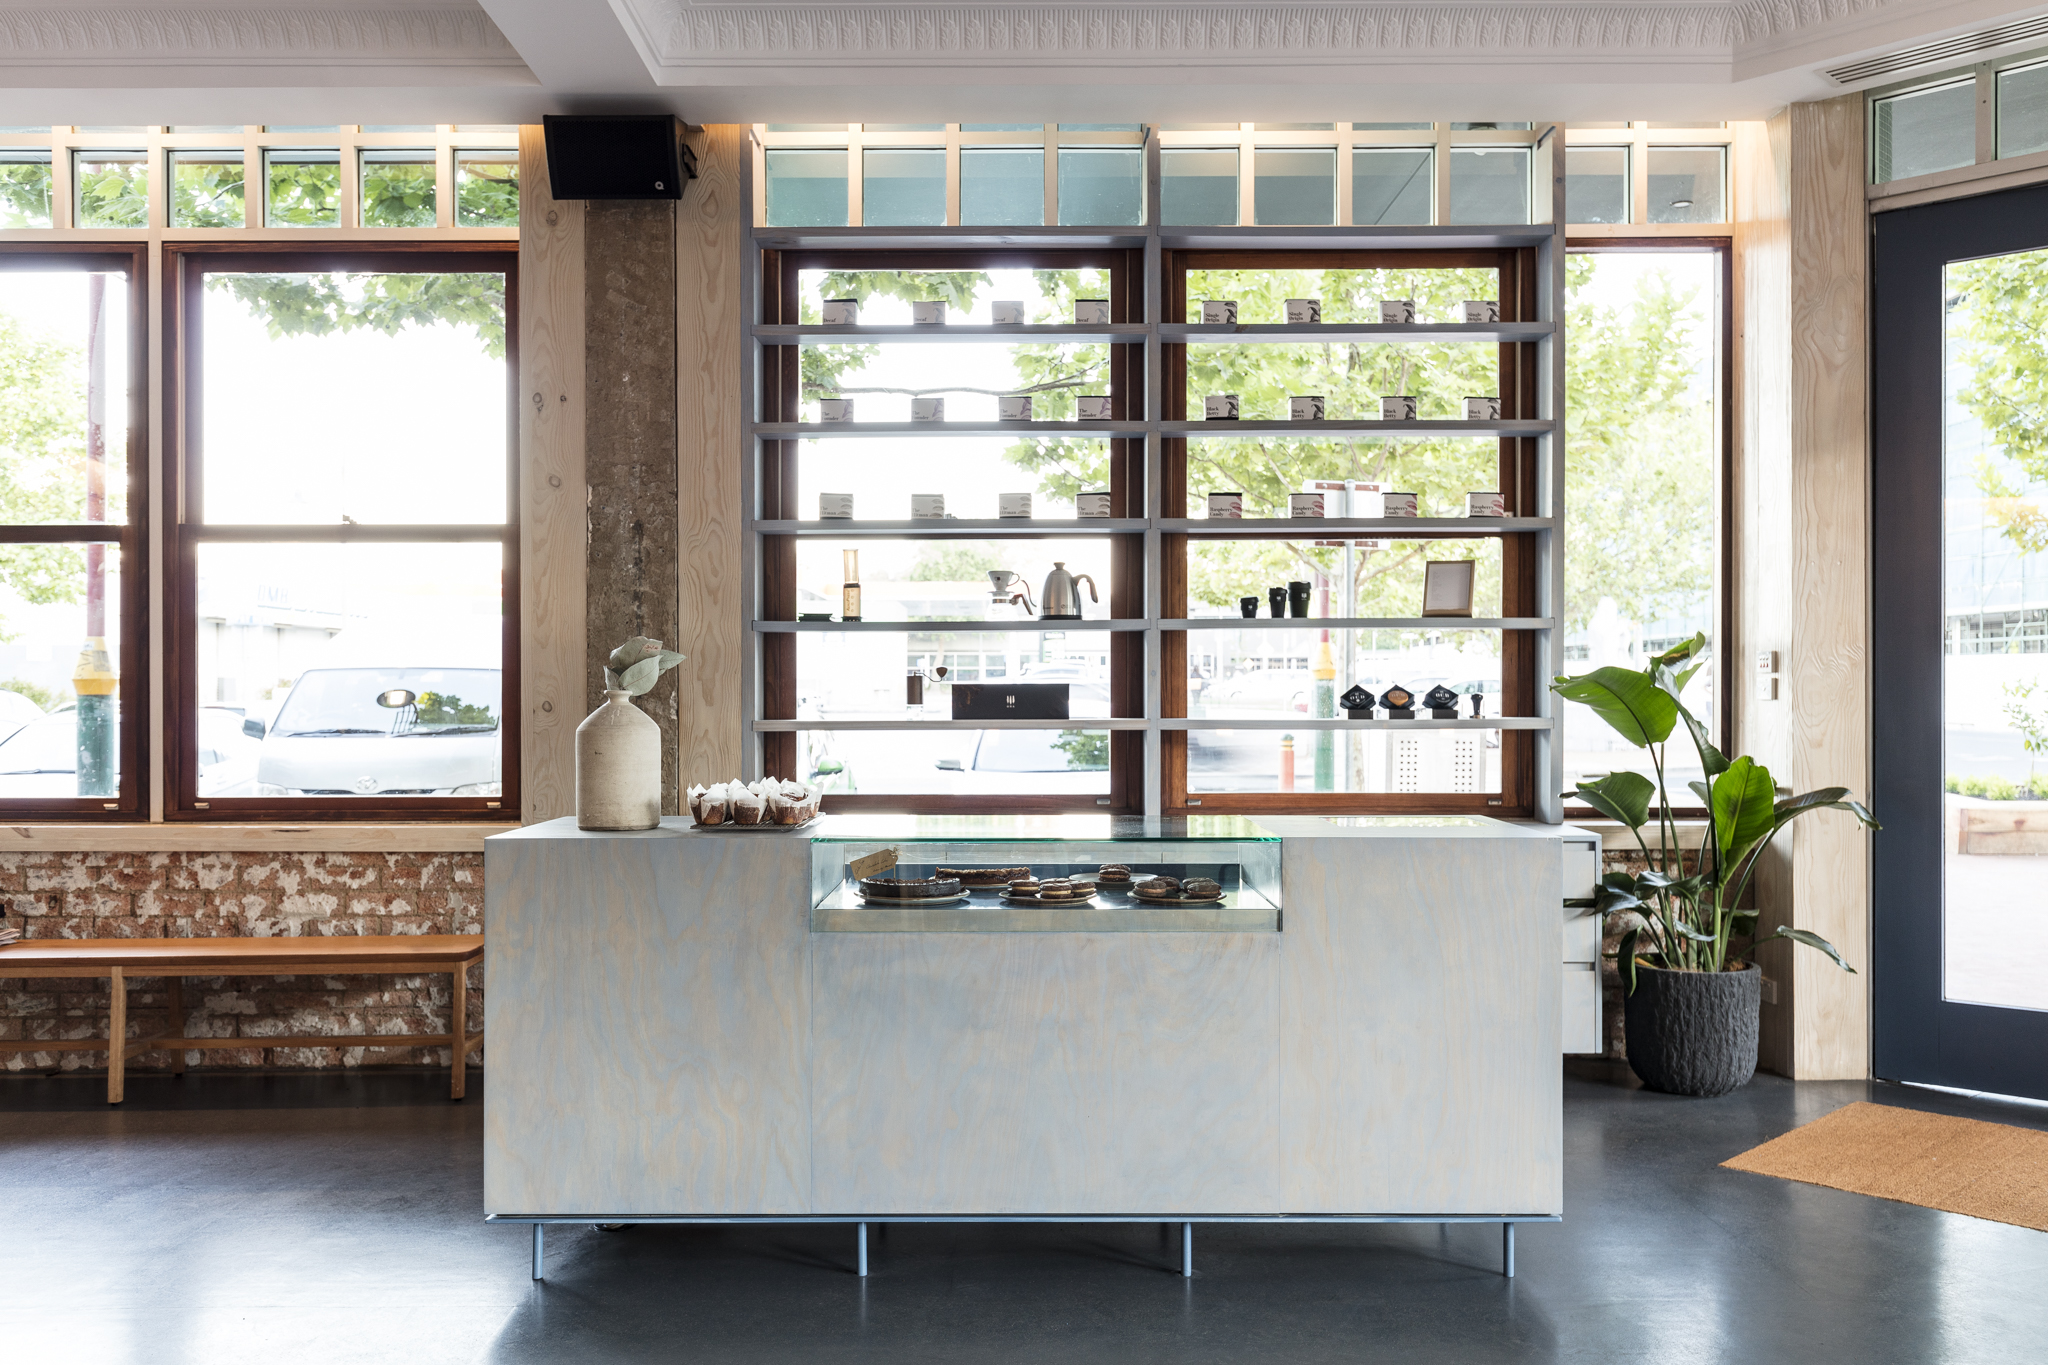 Gallery Of High Road By Foolscap Studio Local Australian Design And Interiors Dickson, Act Image 17